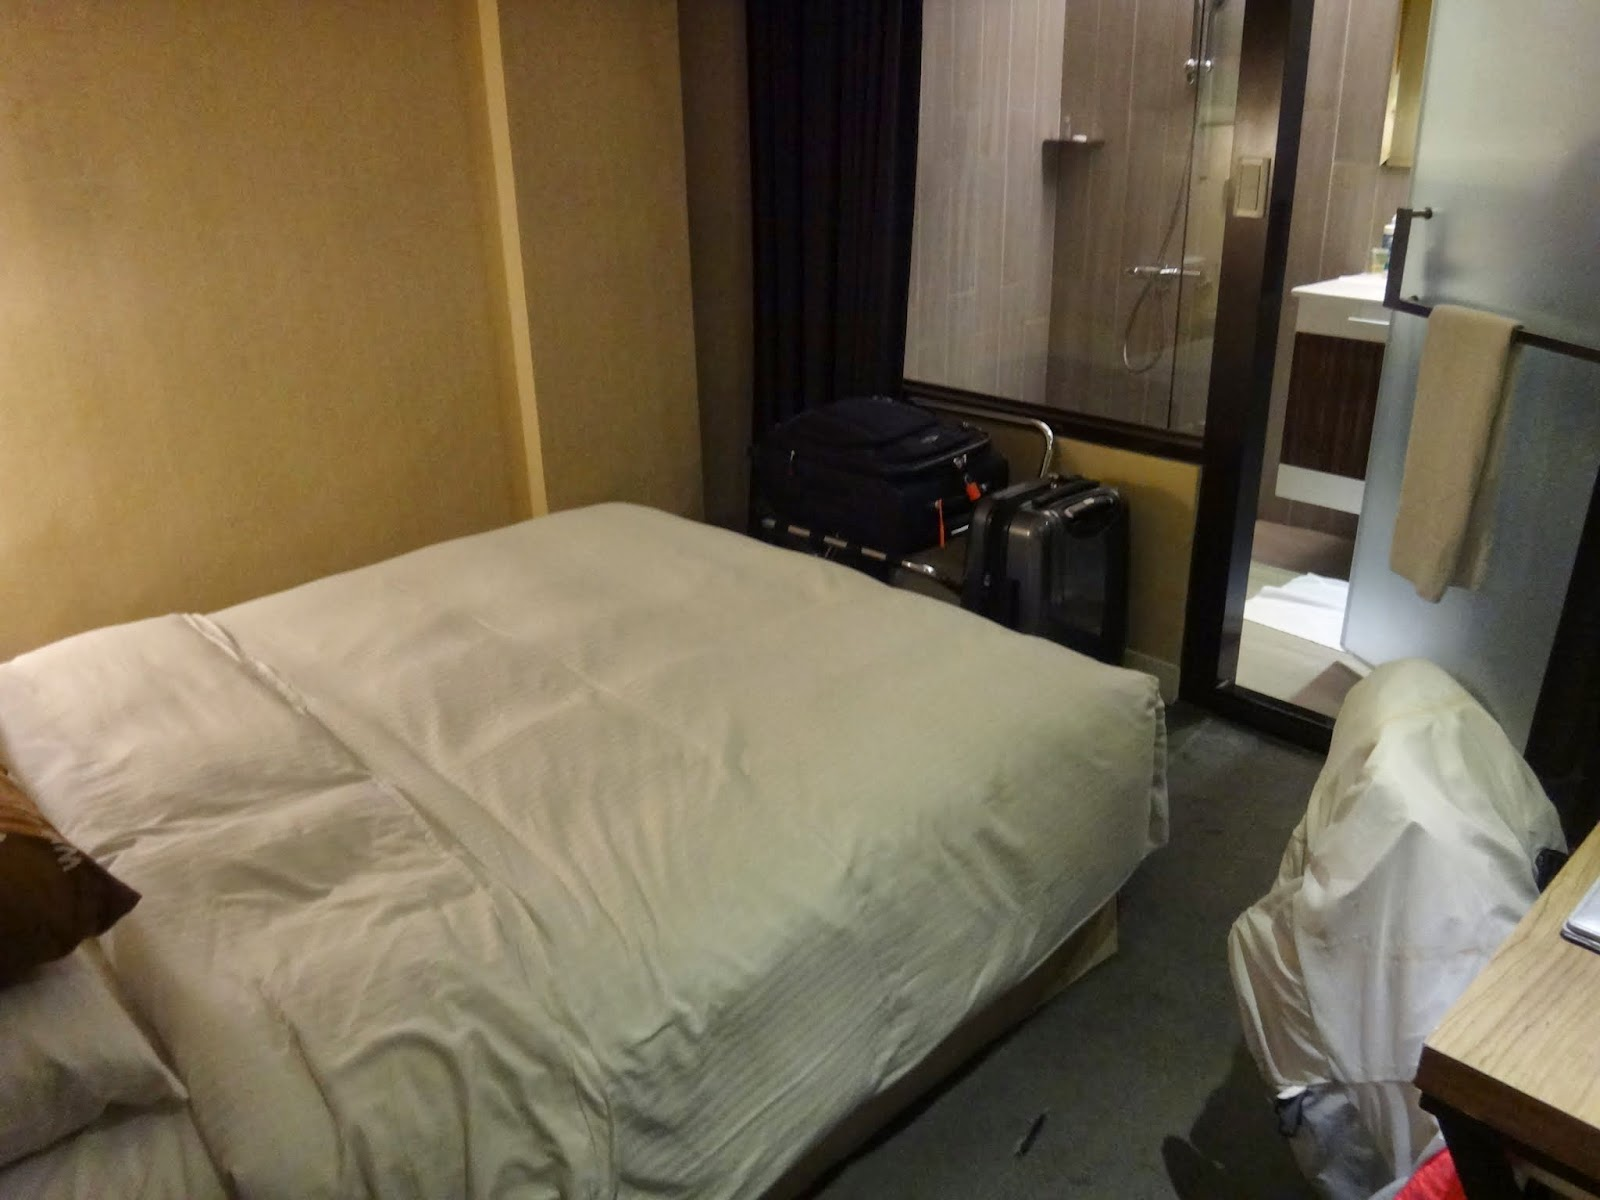 A small comfortable and clean double bed room including  free snacks and coffee at Via Hotel is what you need to shower and sleep after your day walk around Taipei, Taiwan